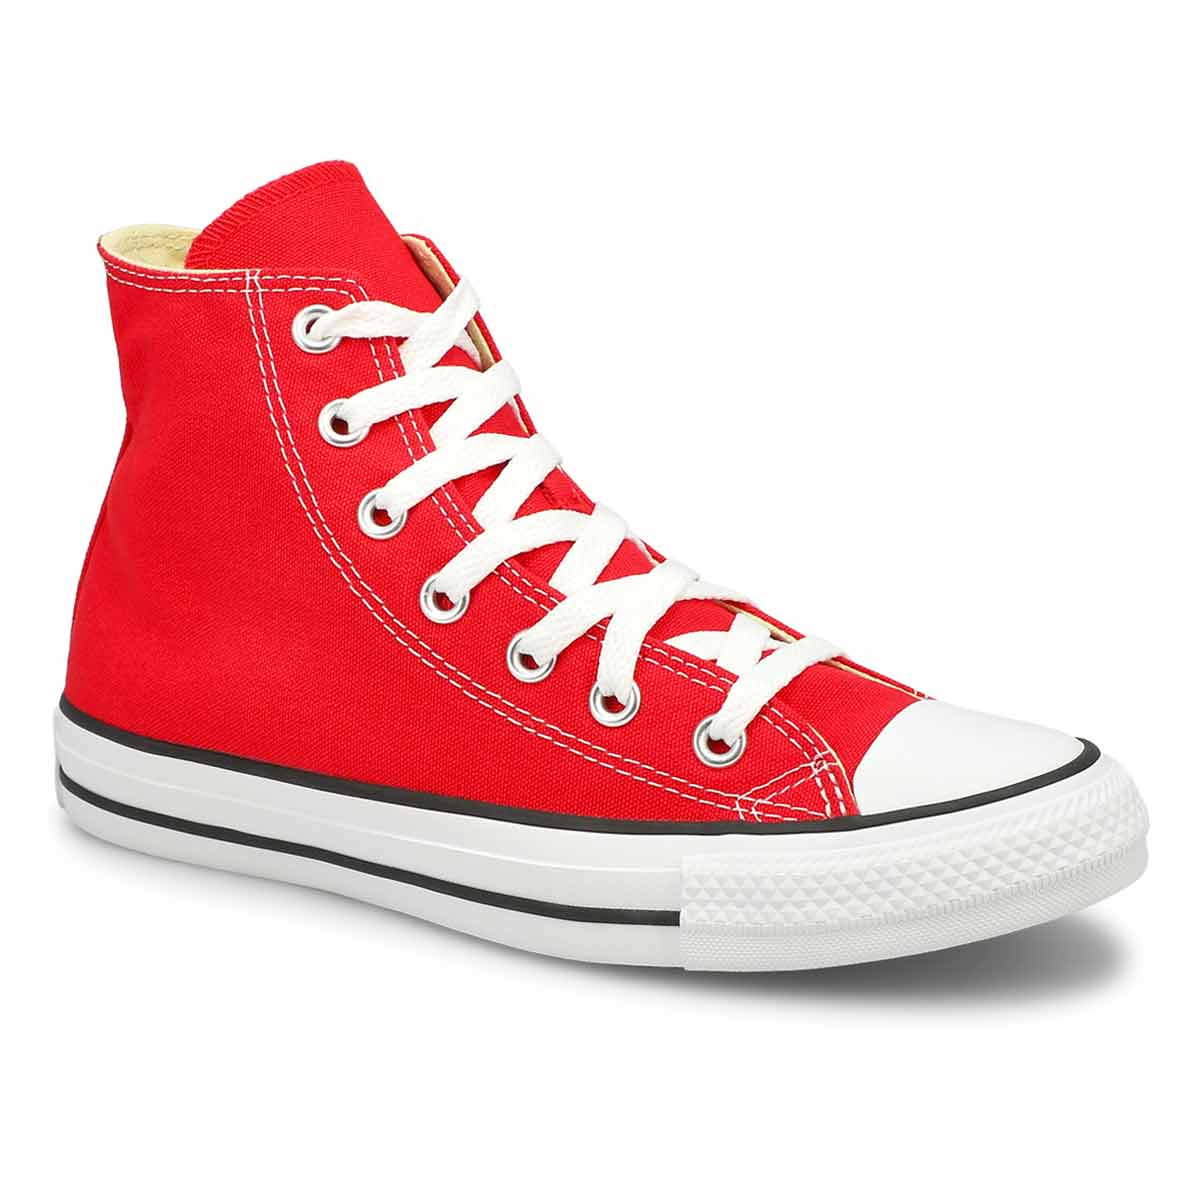 Women's CHUCK TAYLOR CORE HI red sneakers